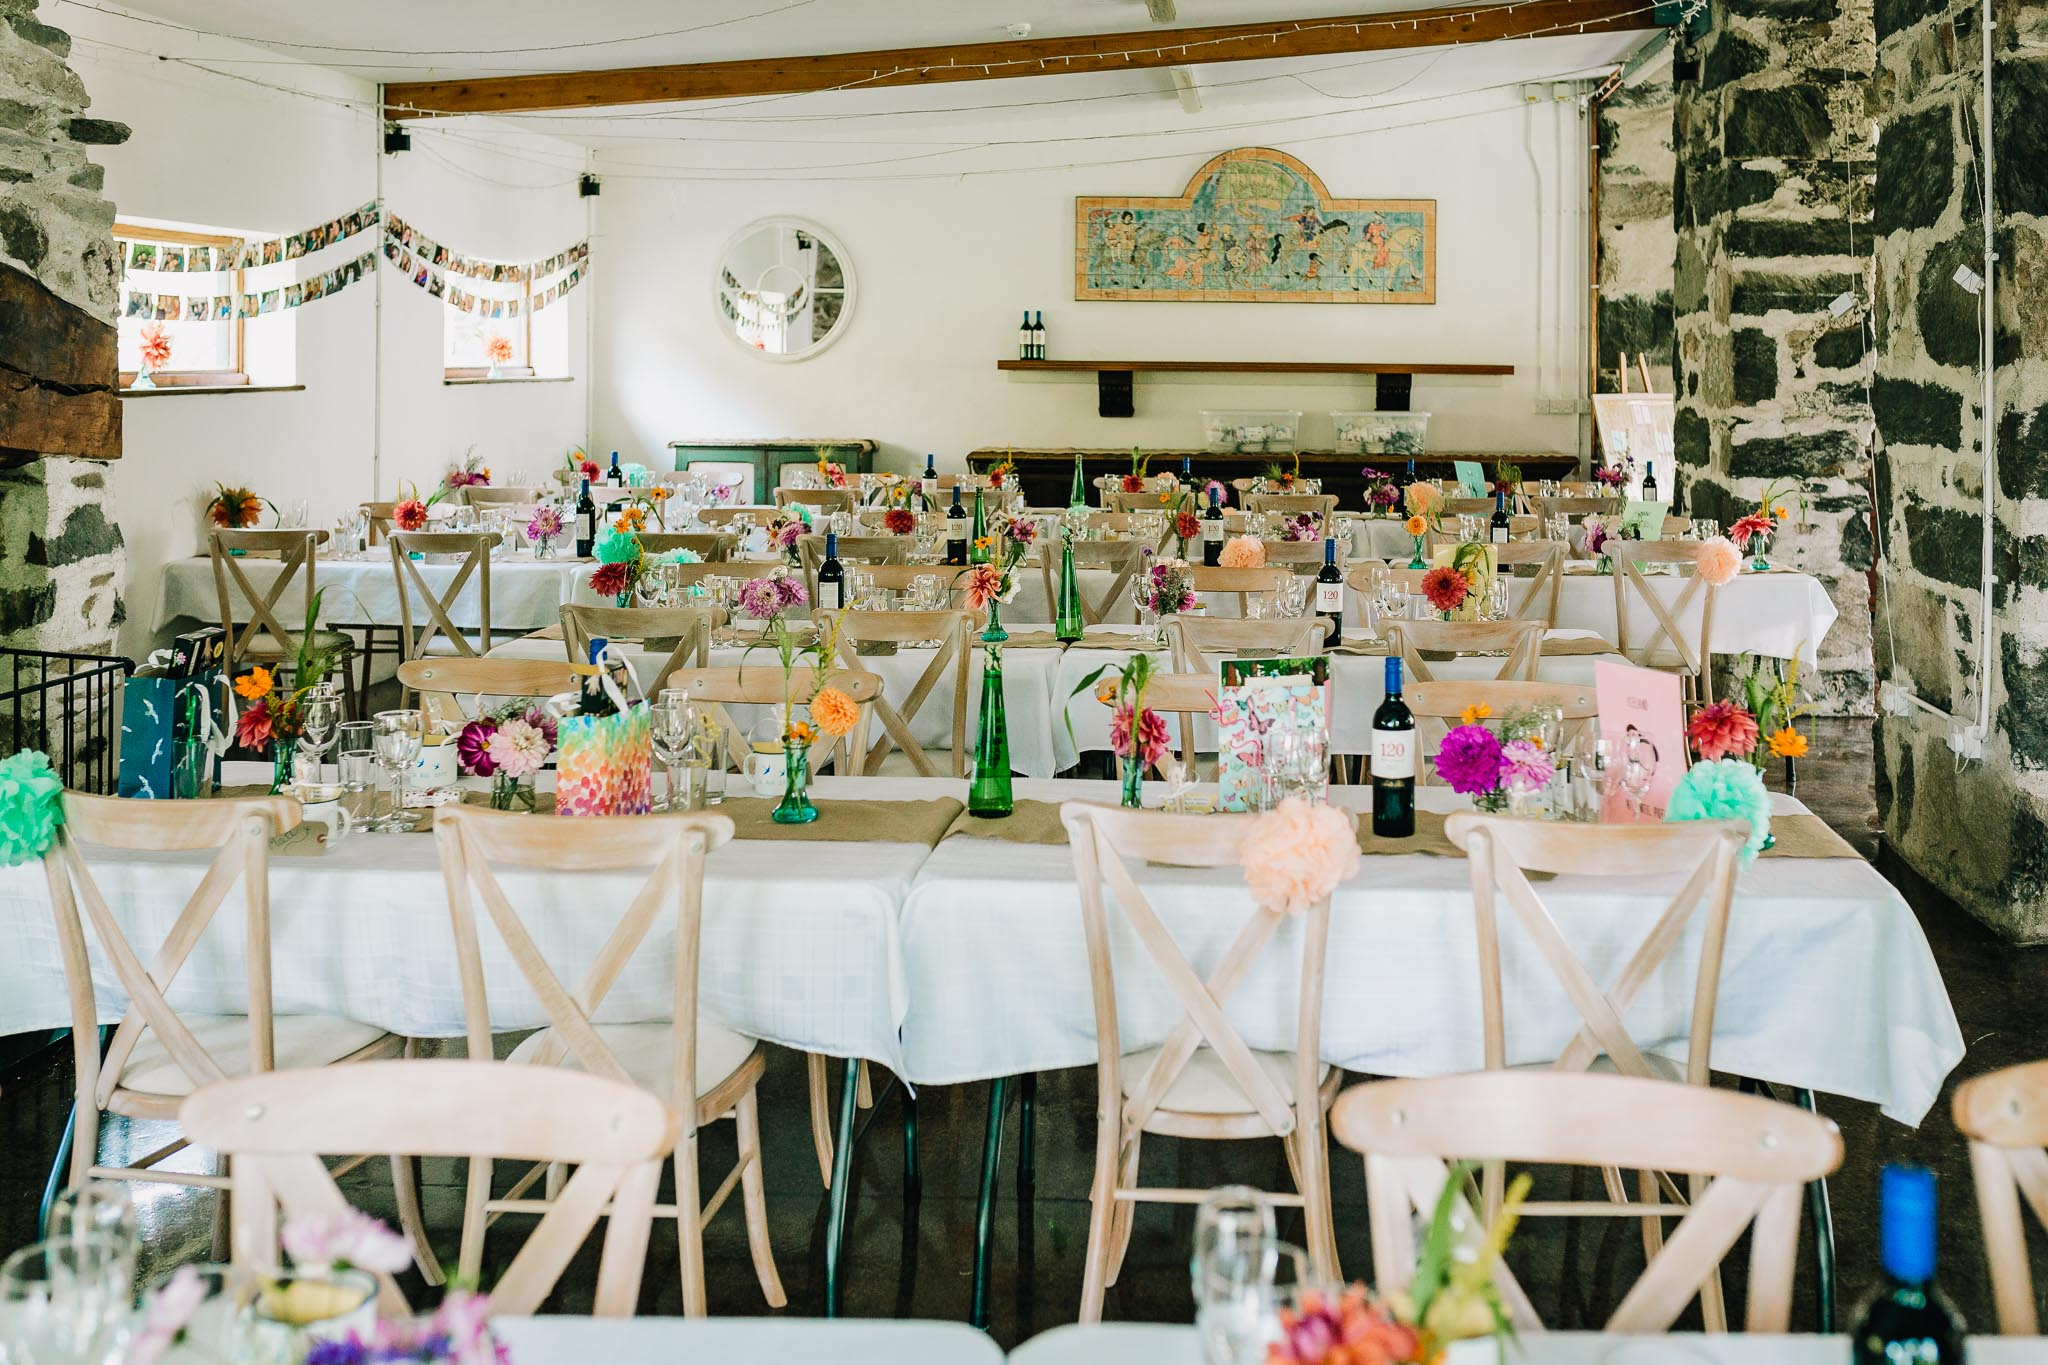 RUSTIC BARN WEDDING RECEPTION IN NORTH WALES